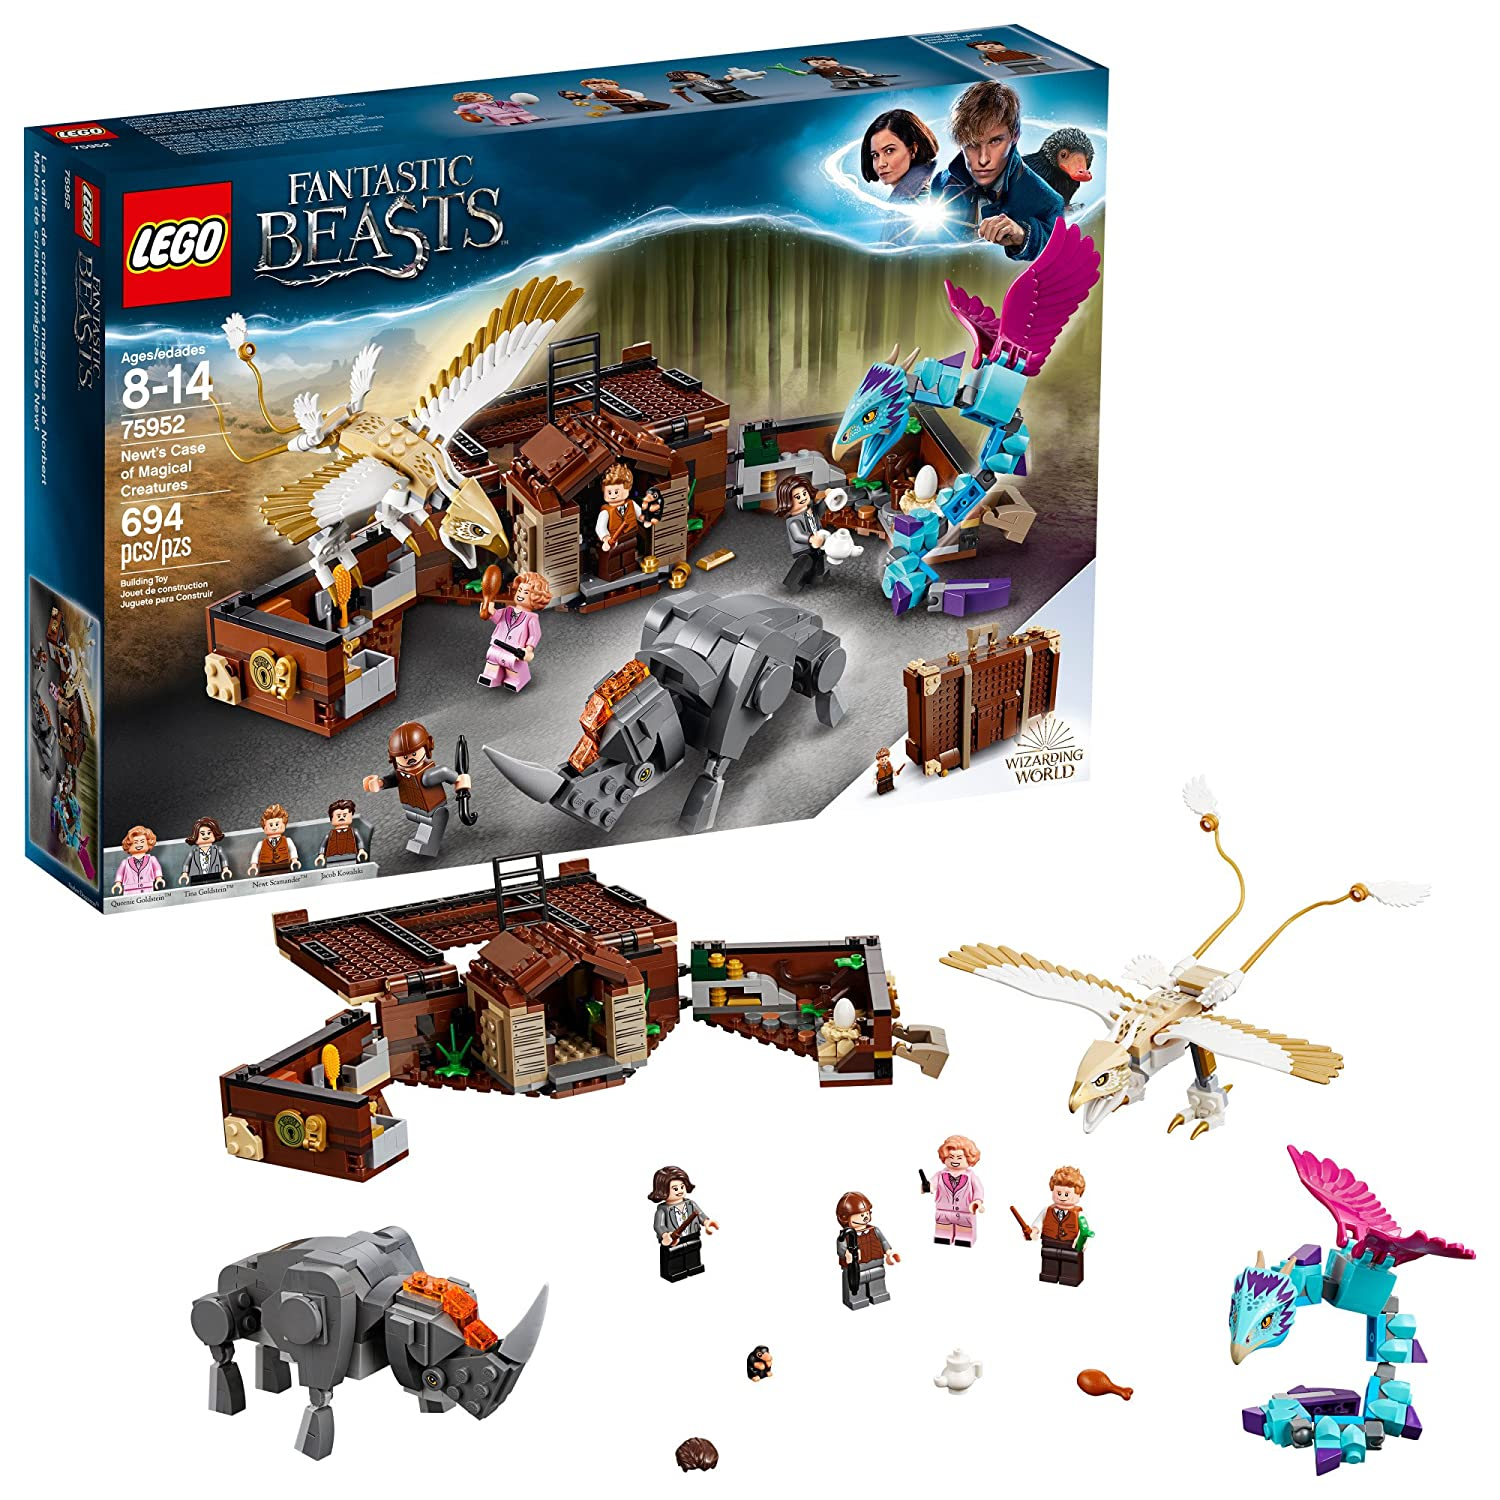 LEGO Fantastic Beasts Newt's Case of Magical Creatures 75952 Building Kit (694 Piece) 6212639